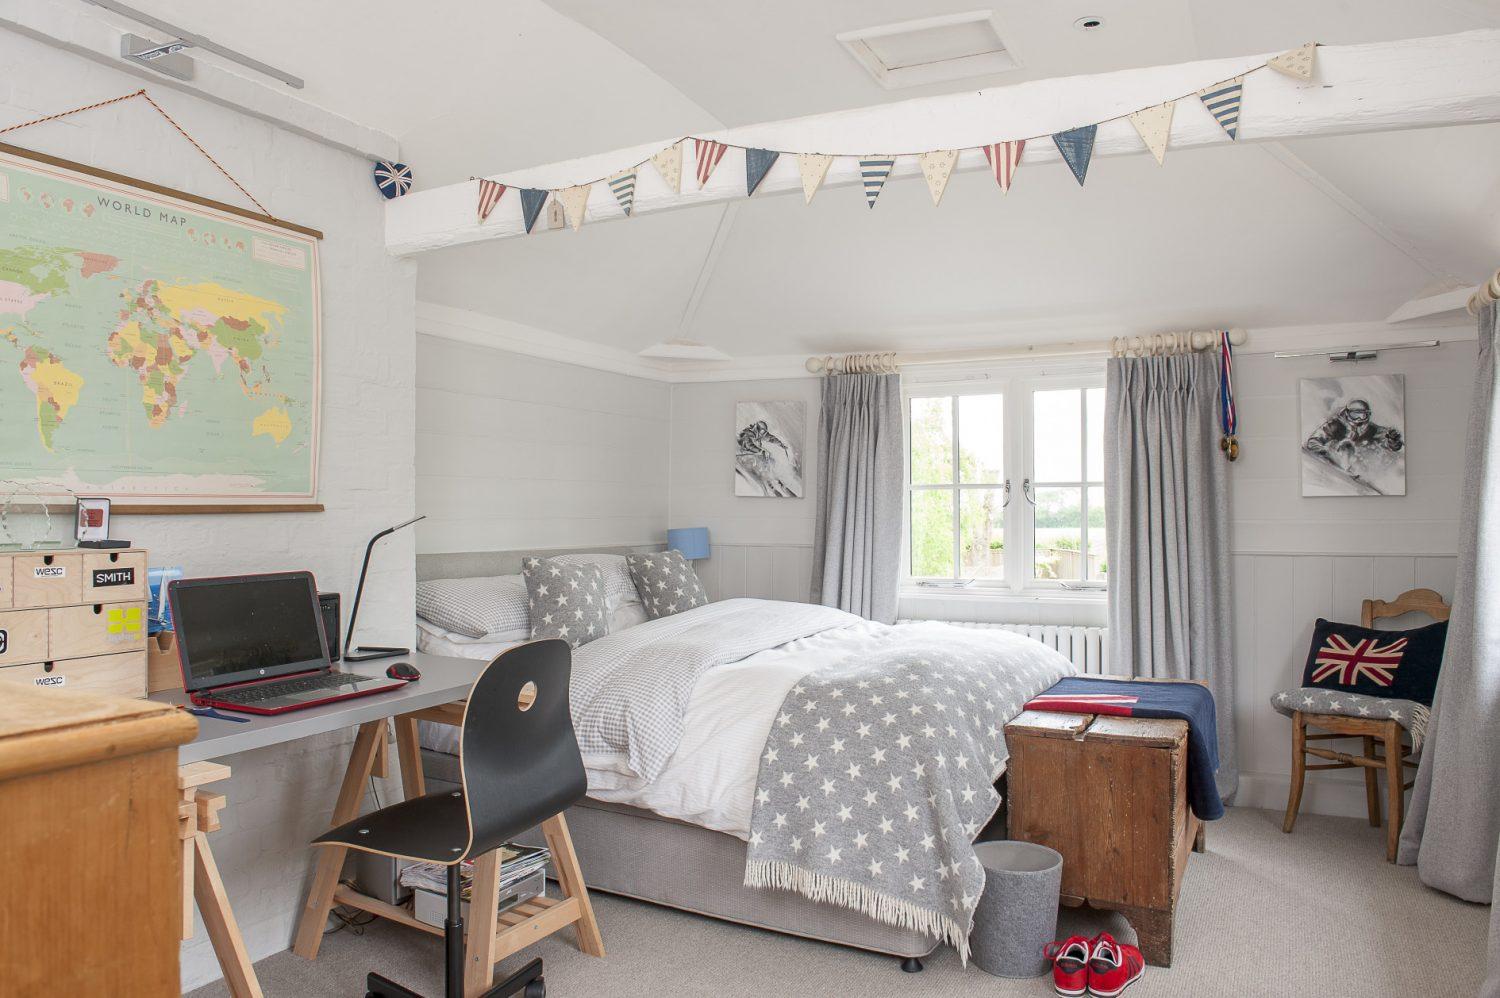 The boys' rooms are light and airy and cleverly furnished to allow work, rest and play – with typical, smart wooden furnishing including these sturdy bunk beds in Oli's room